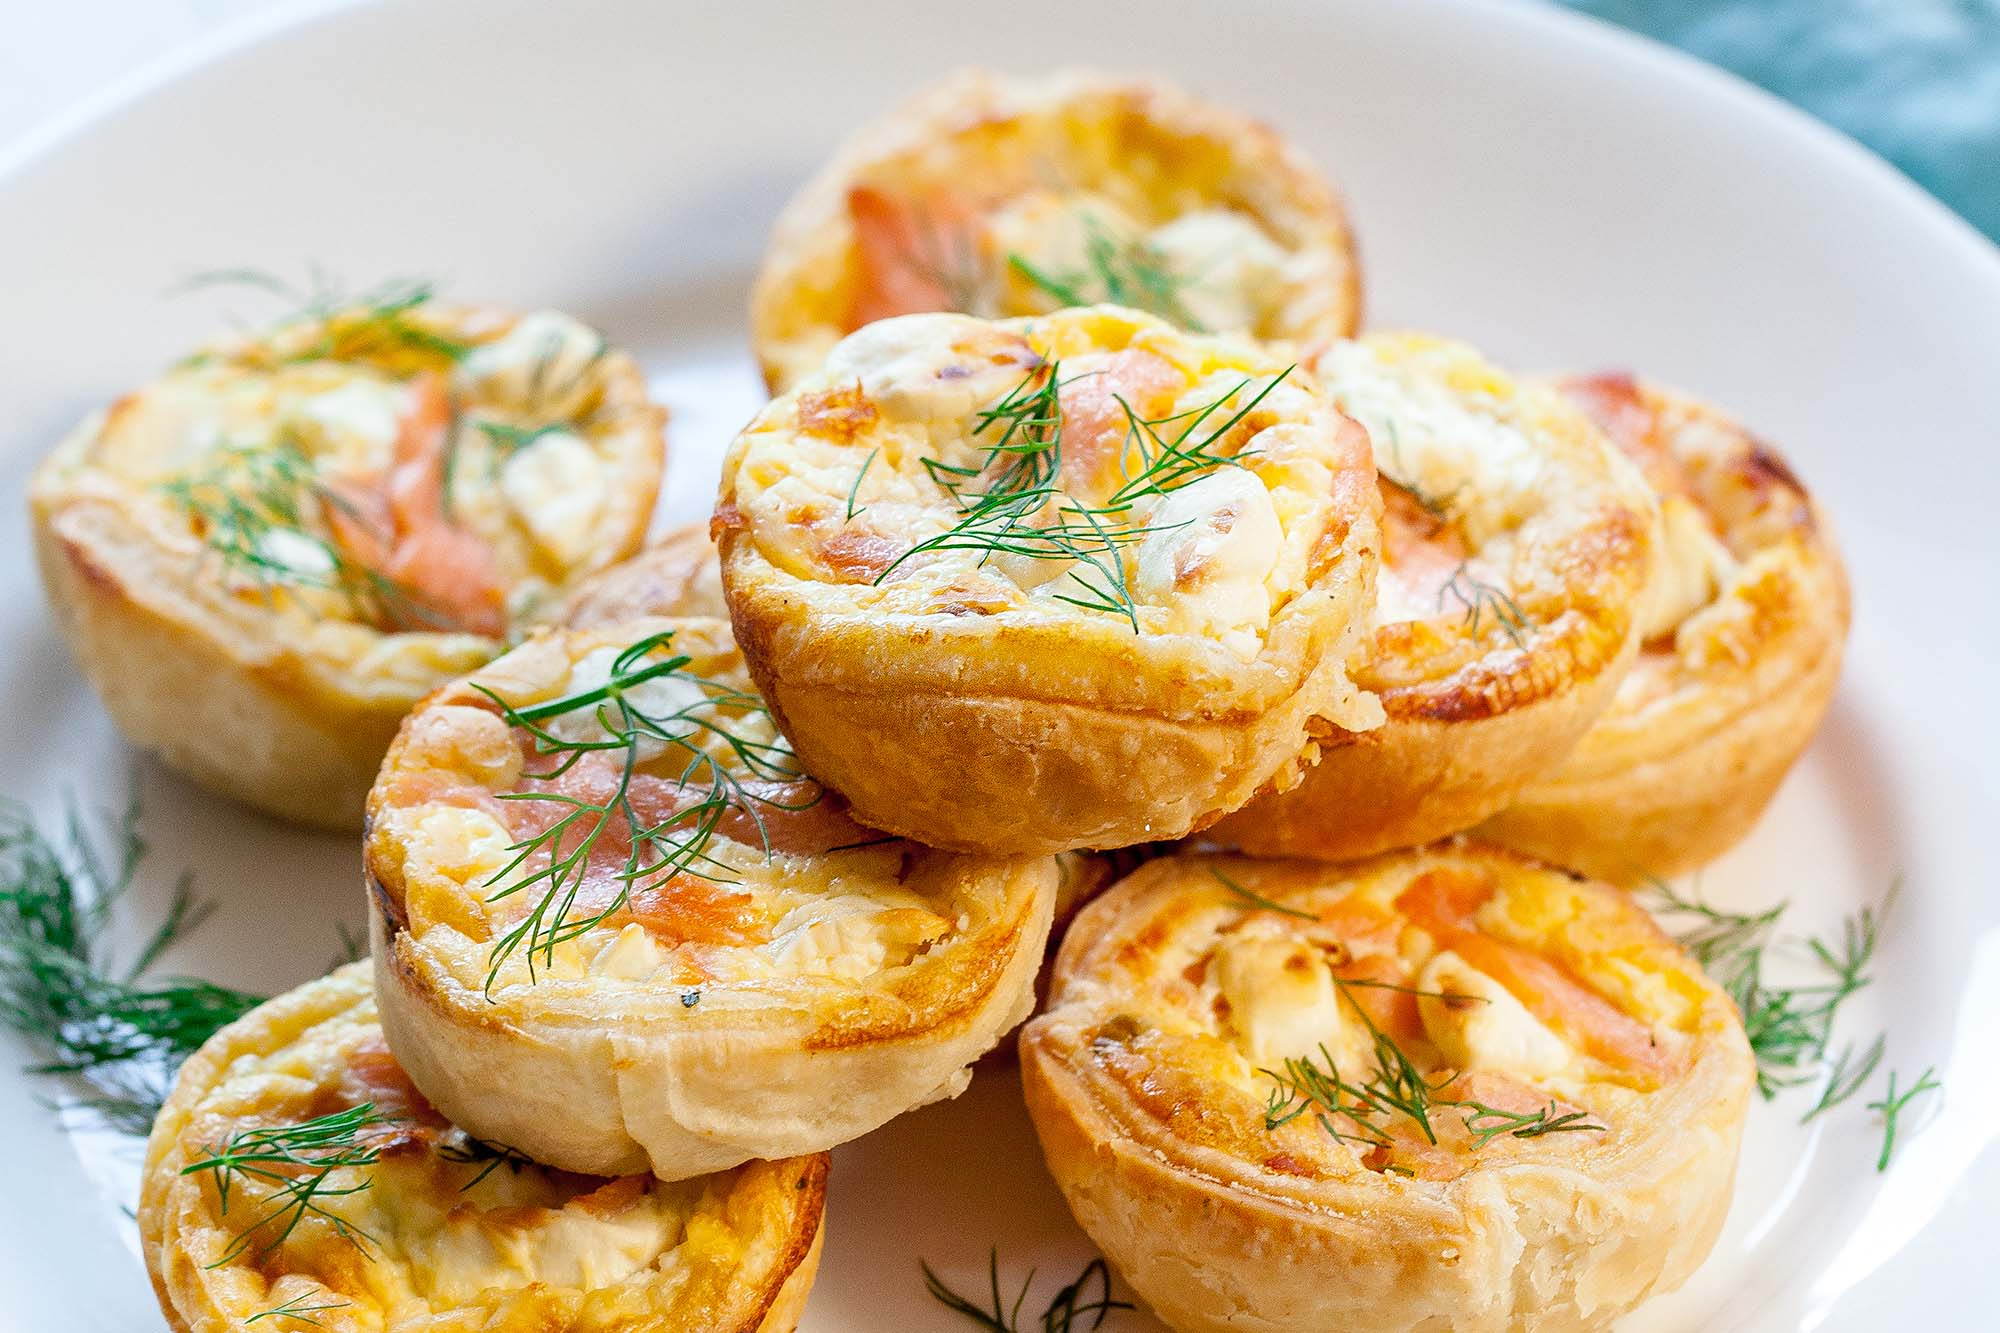 Mini Quiches De Salmón